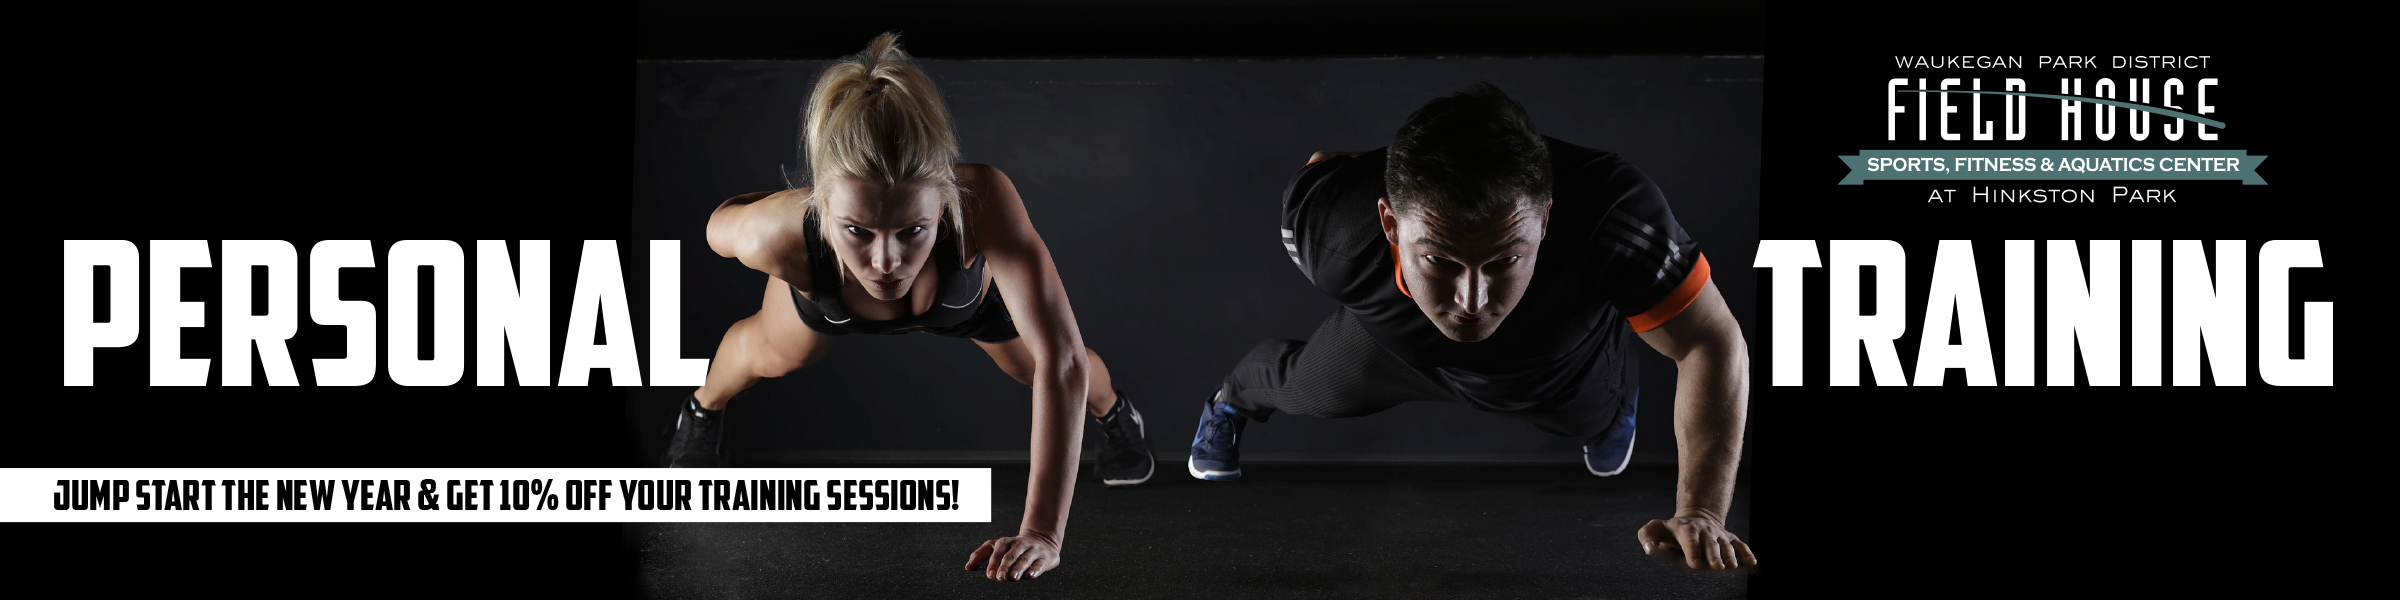 Personal Training Web Banner